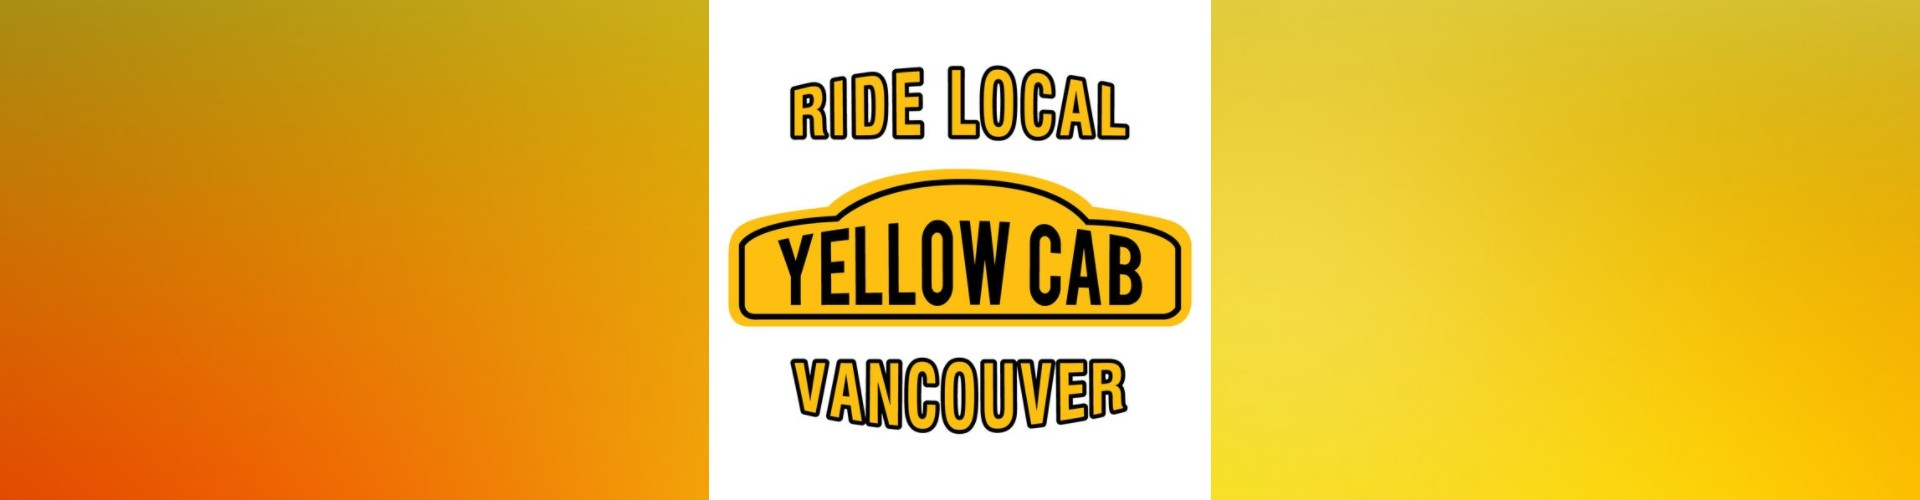 Ride Local Vancouver Taxi Cabs